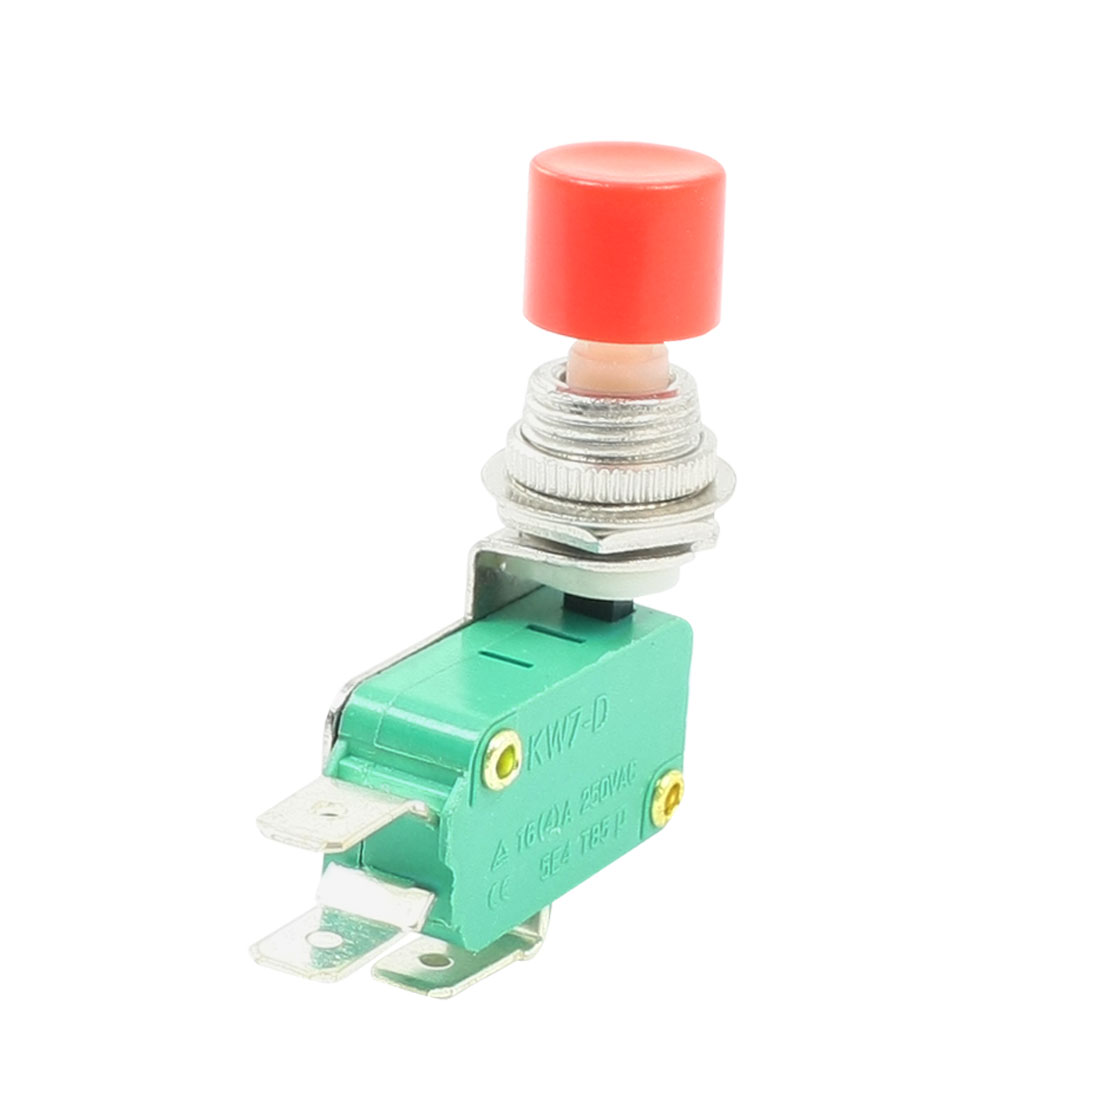 AC 250V 10A Momentary Emergency Stop Push Button Switch 12mm Thread Dia